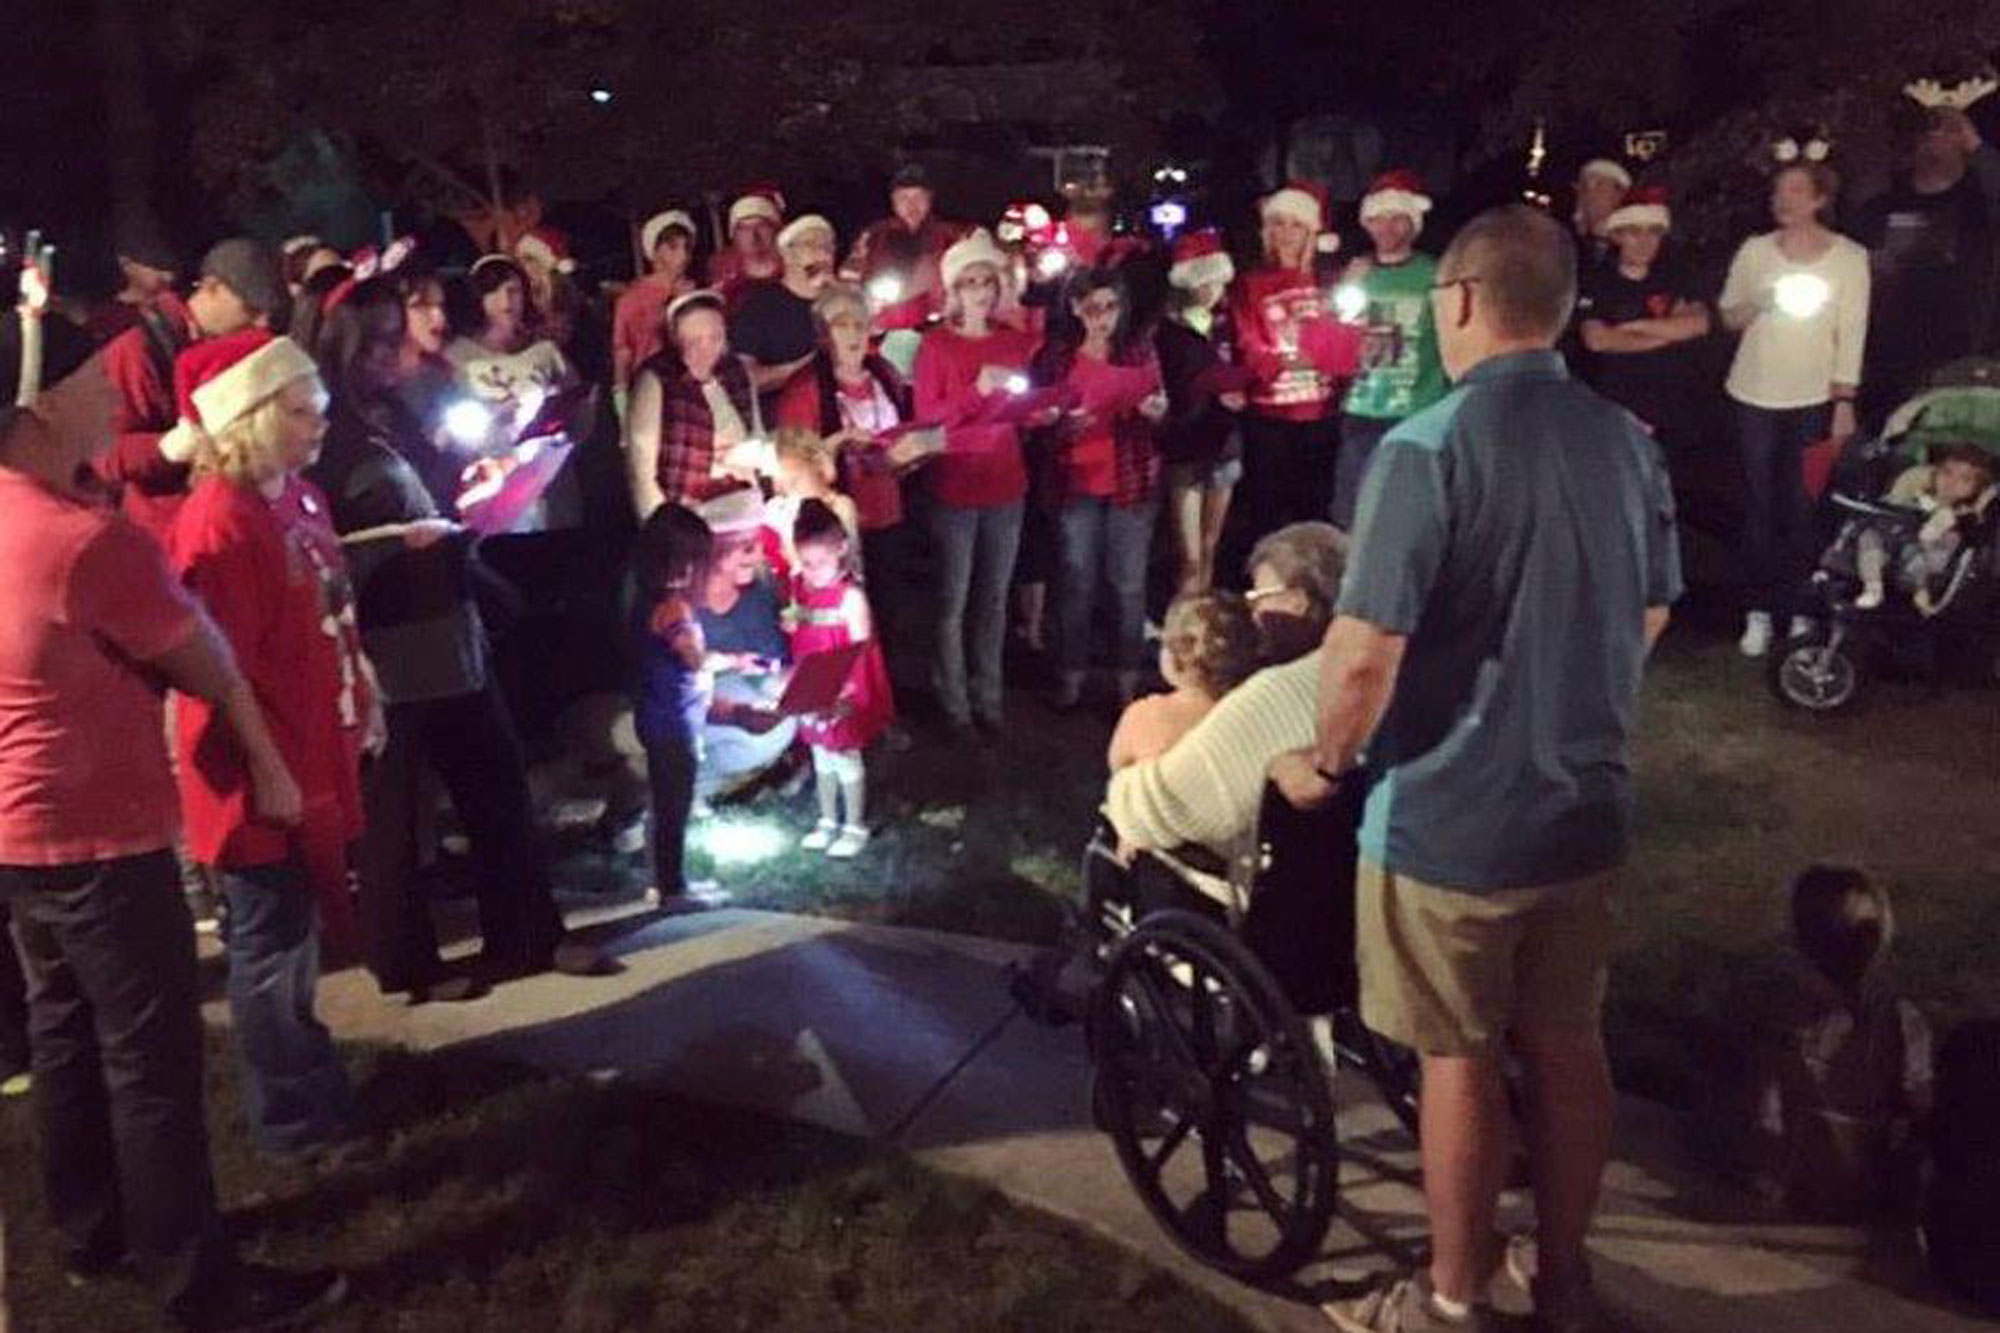 North CarolinaNeighborhood Celebrates Christmas Early to Honor Dying Woman's Last Wish pics are courtesy of Michelle Fadel